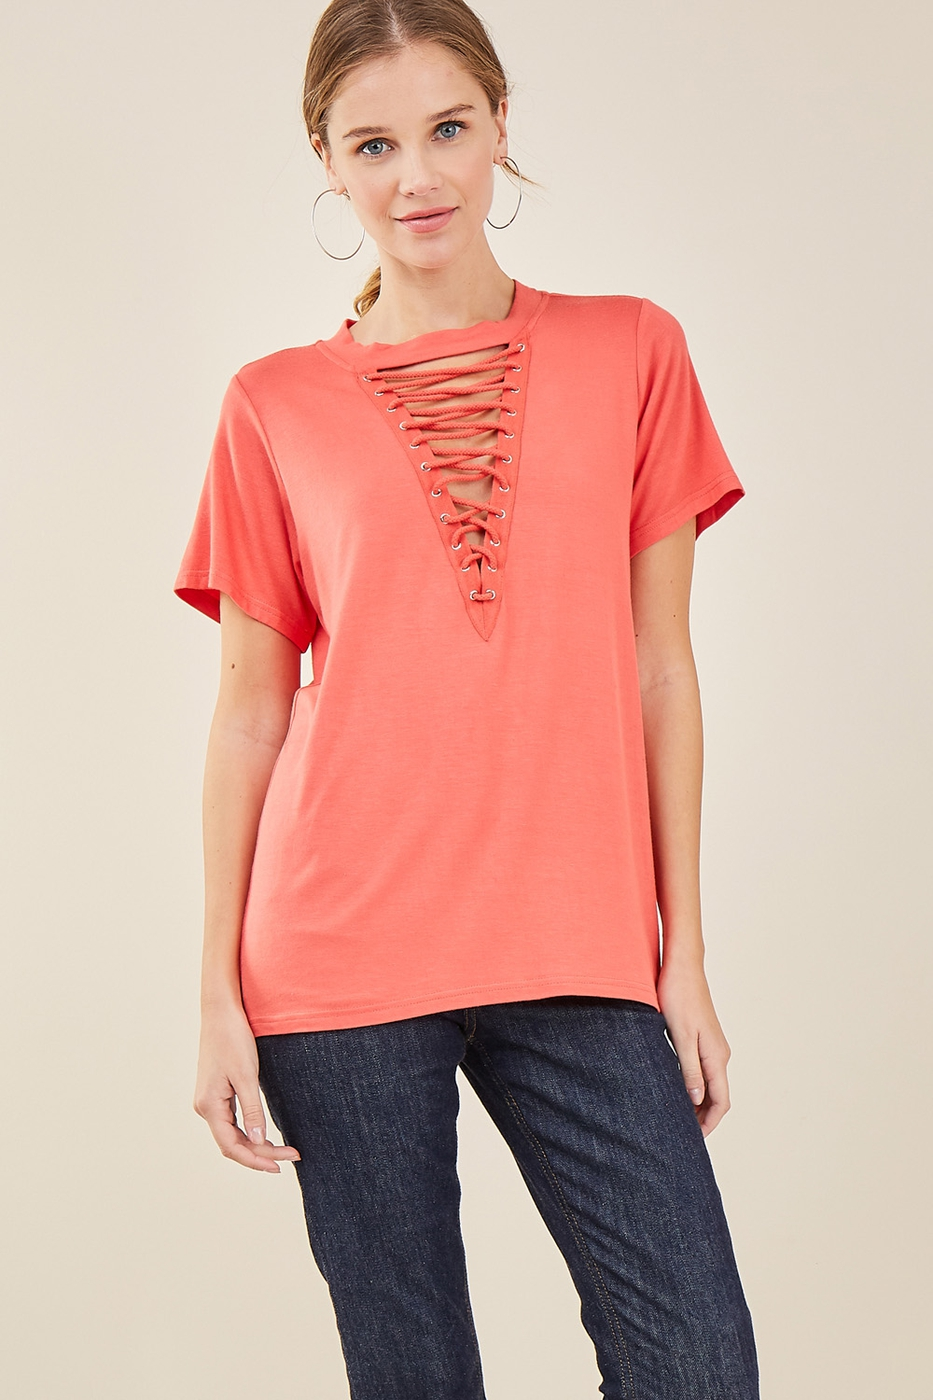 Crew-neck top - orangeshine.com